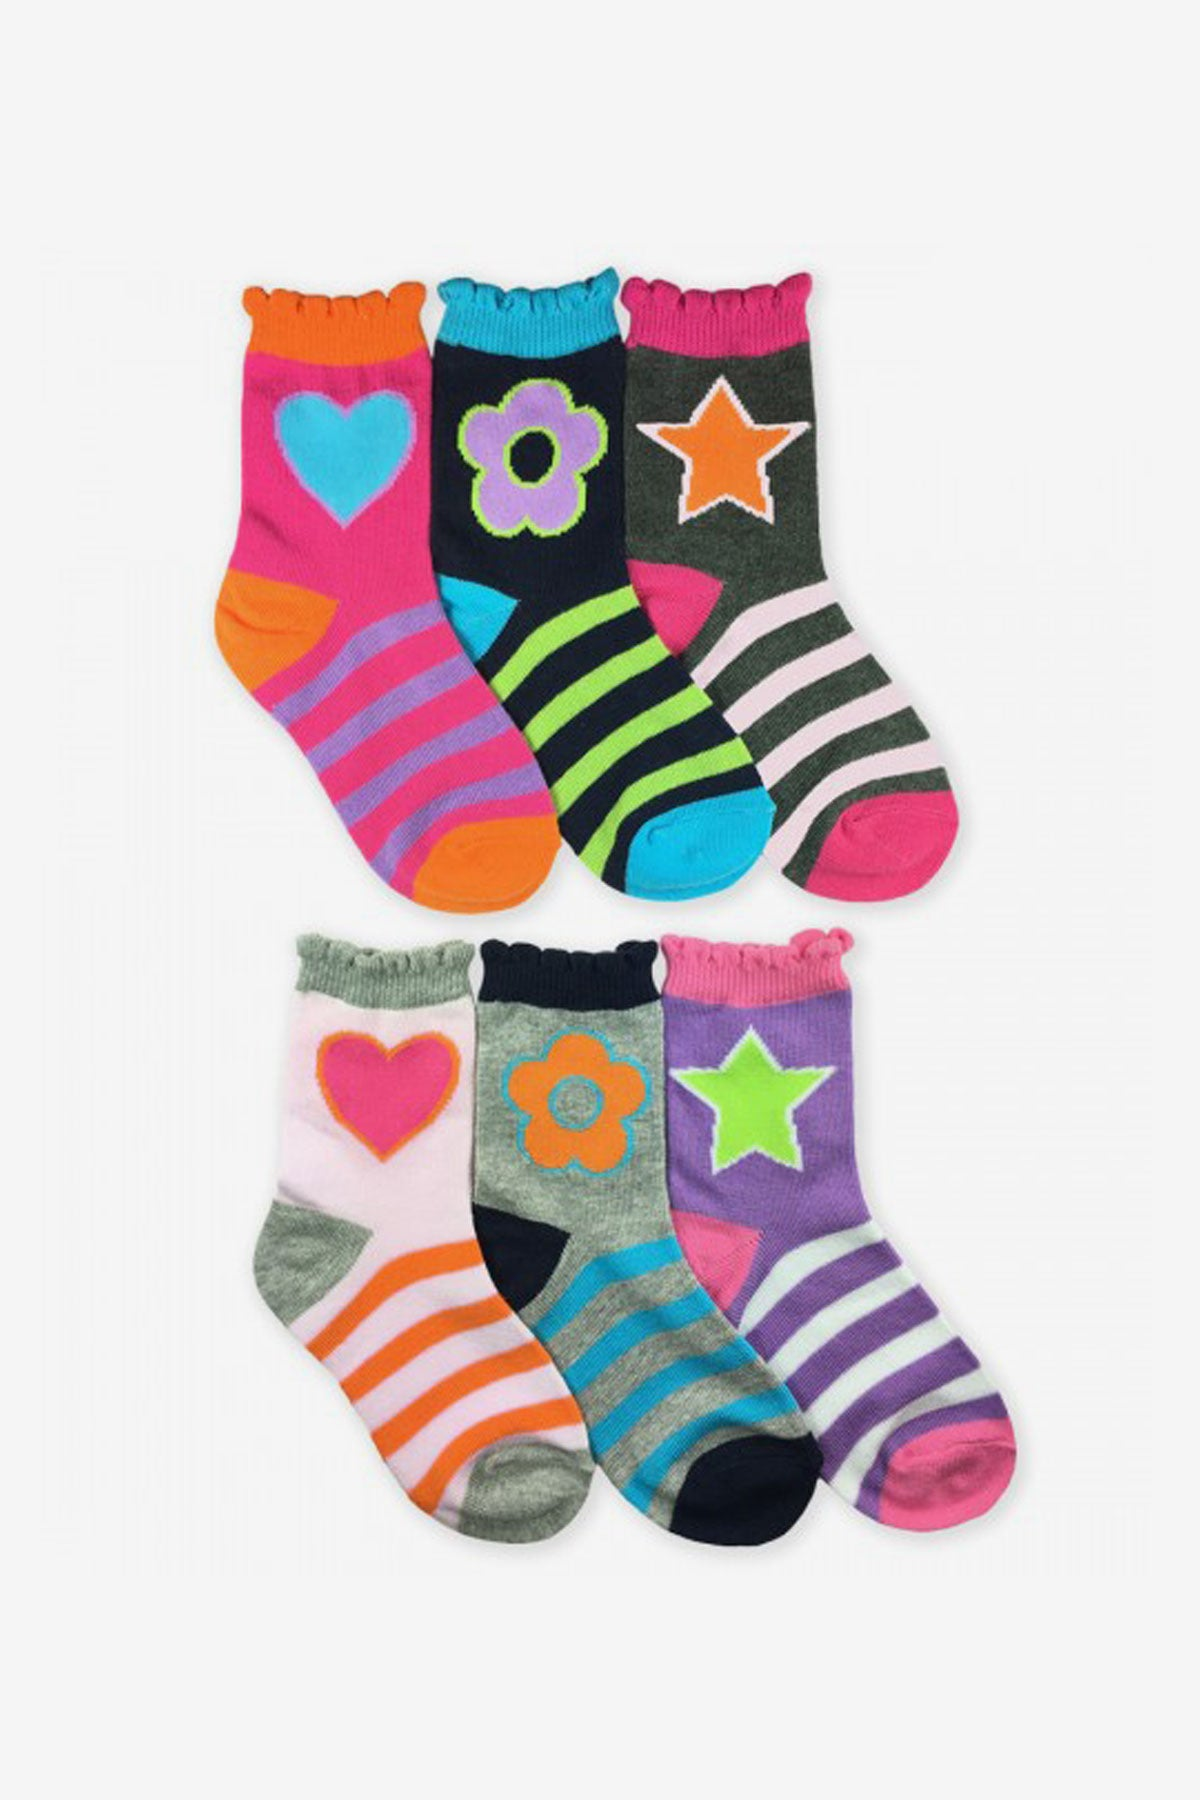 Jefferies Socks Stars/Daisies/Hearts Crew Socks 6-Pack